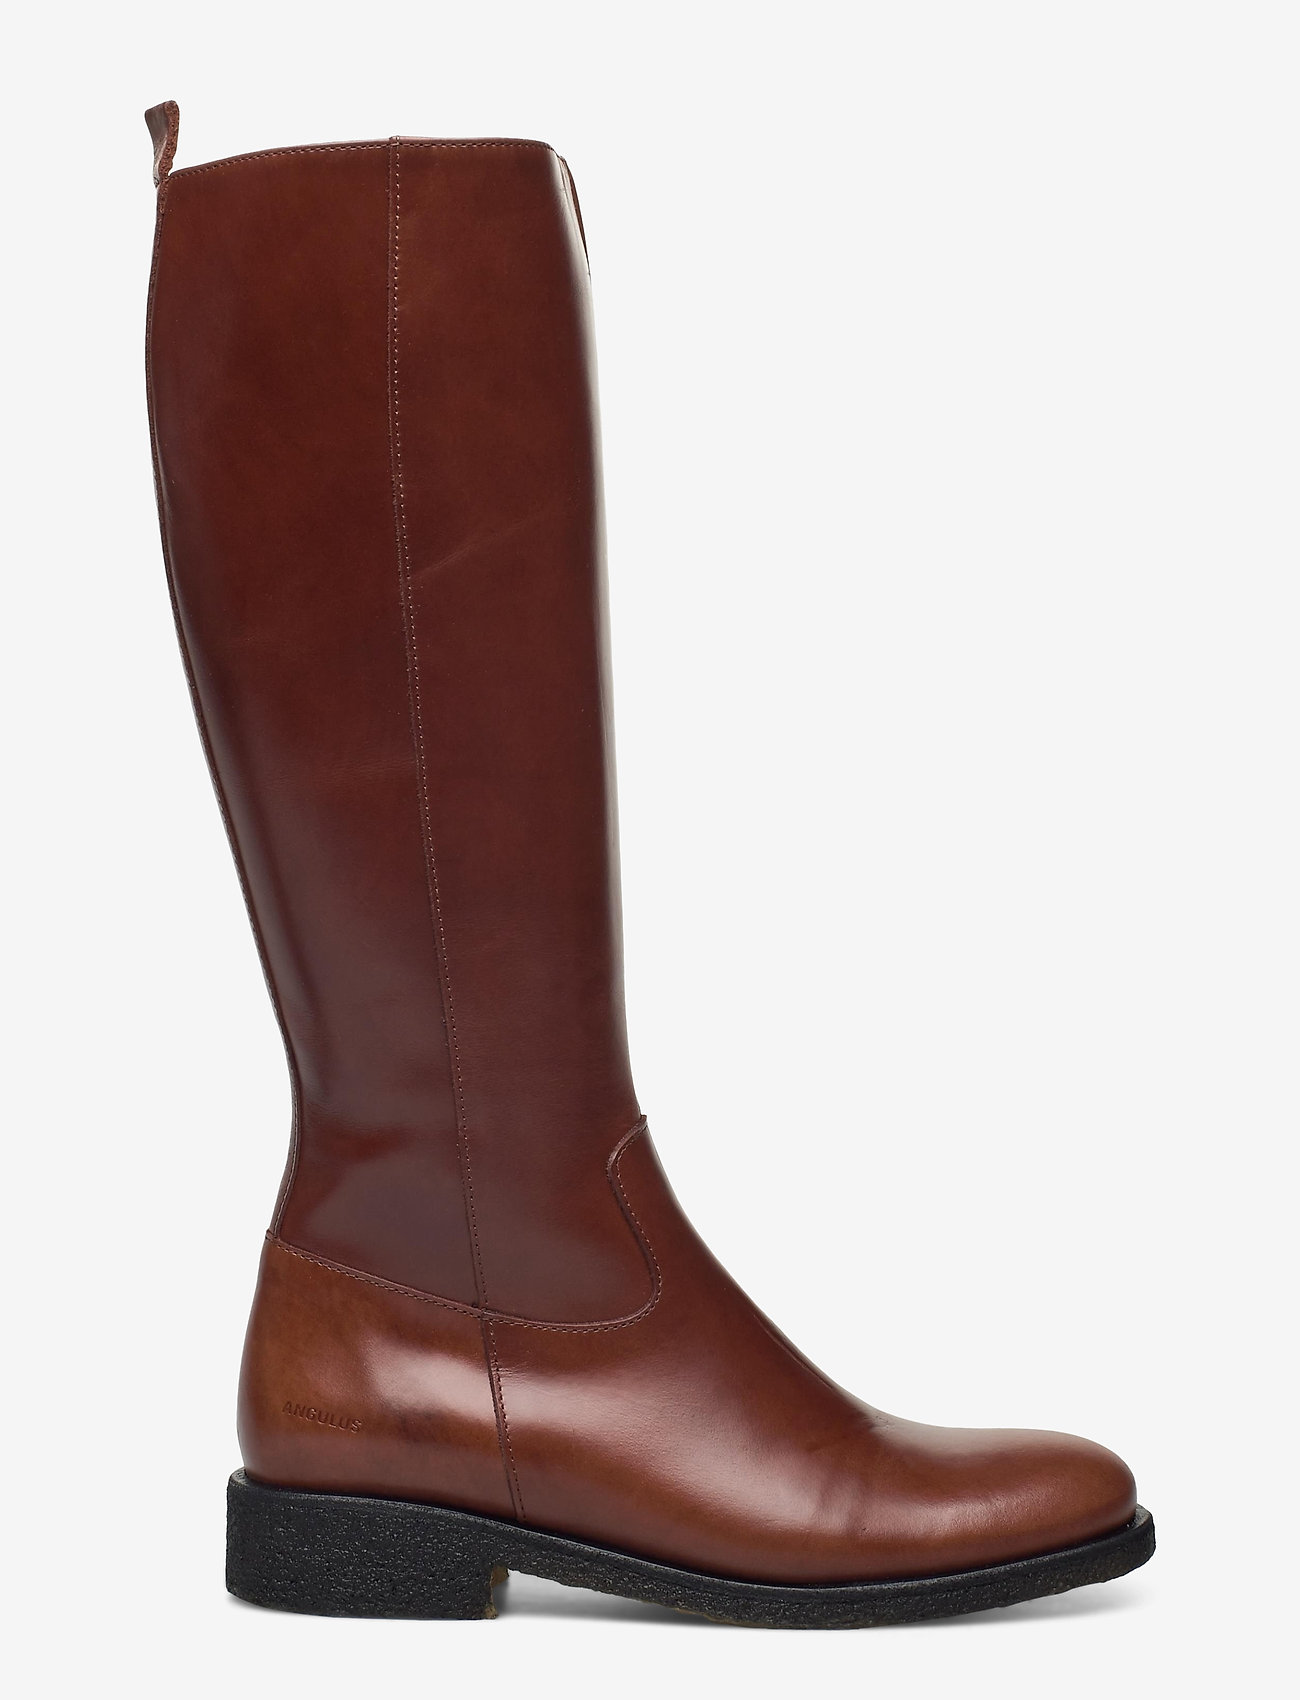 ANGULUS - Long boot - bottes hautes - 1837/002 brown/dark brown - 1